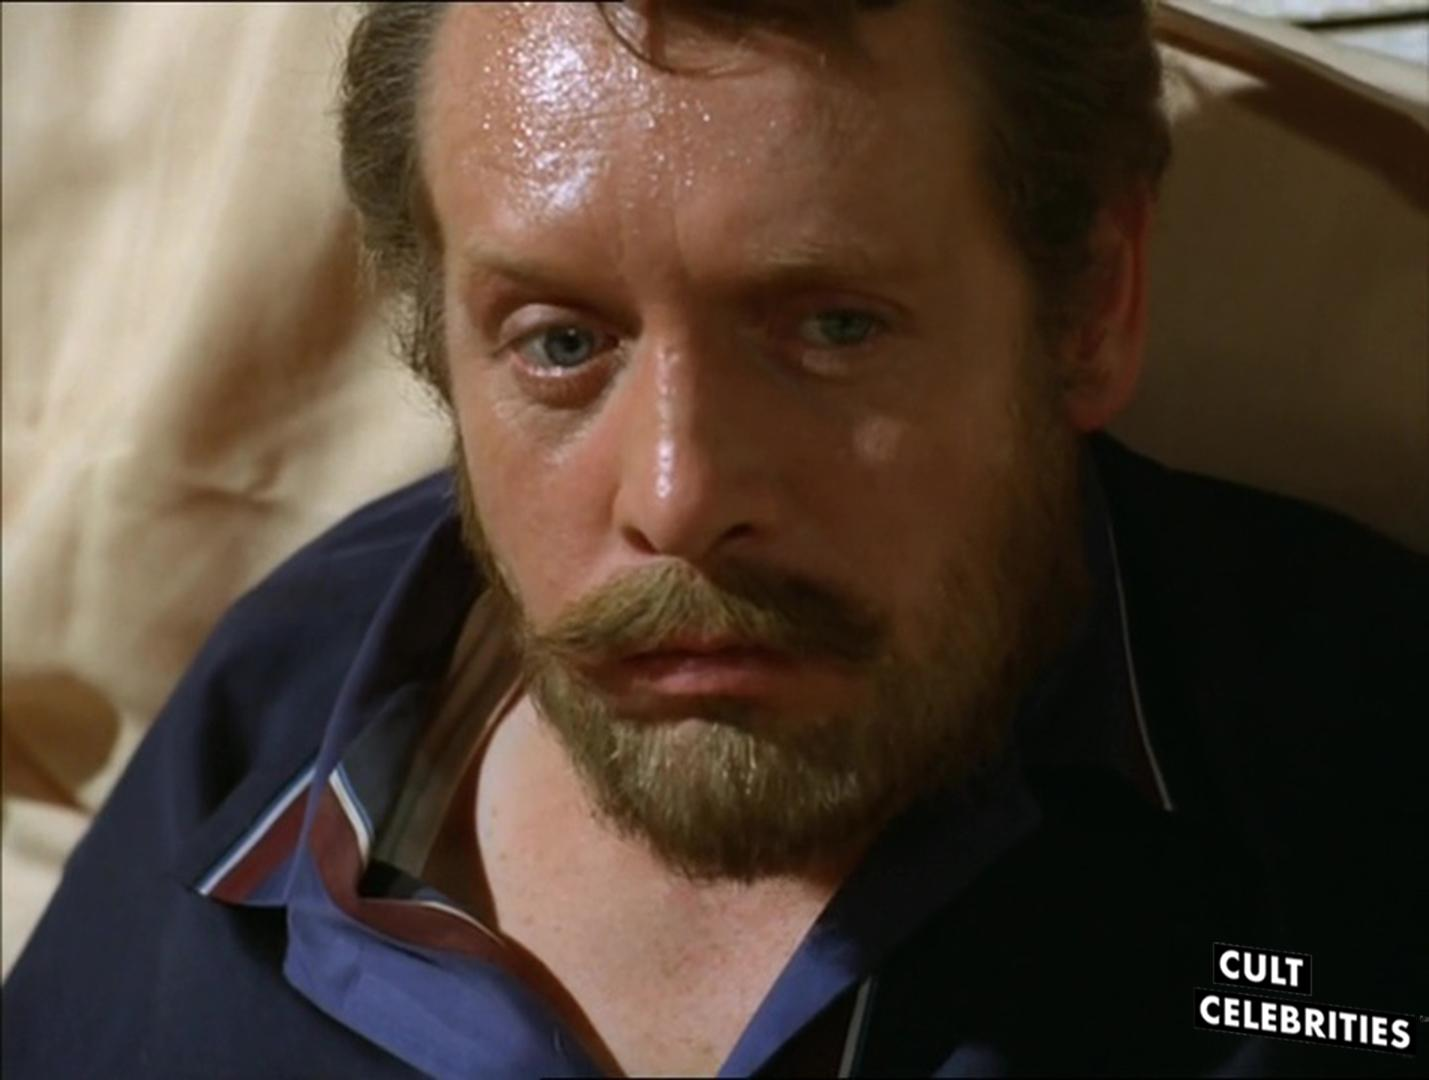 Patrick McGoohan in The Prisoner S01E04 - The Schizoid Man